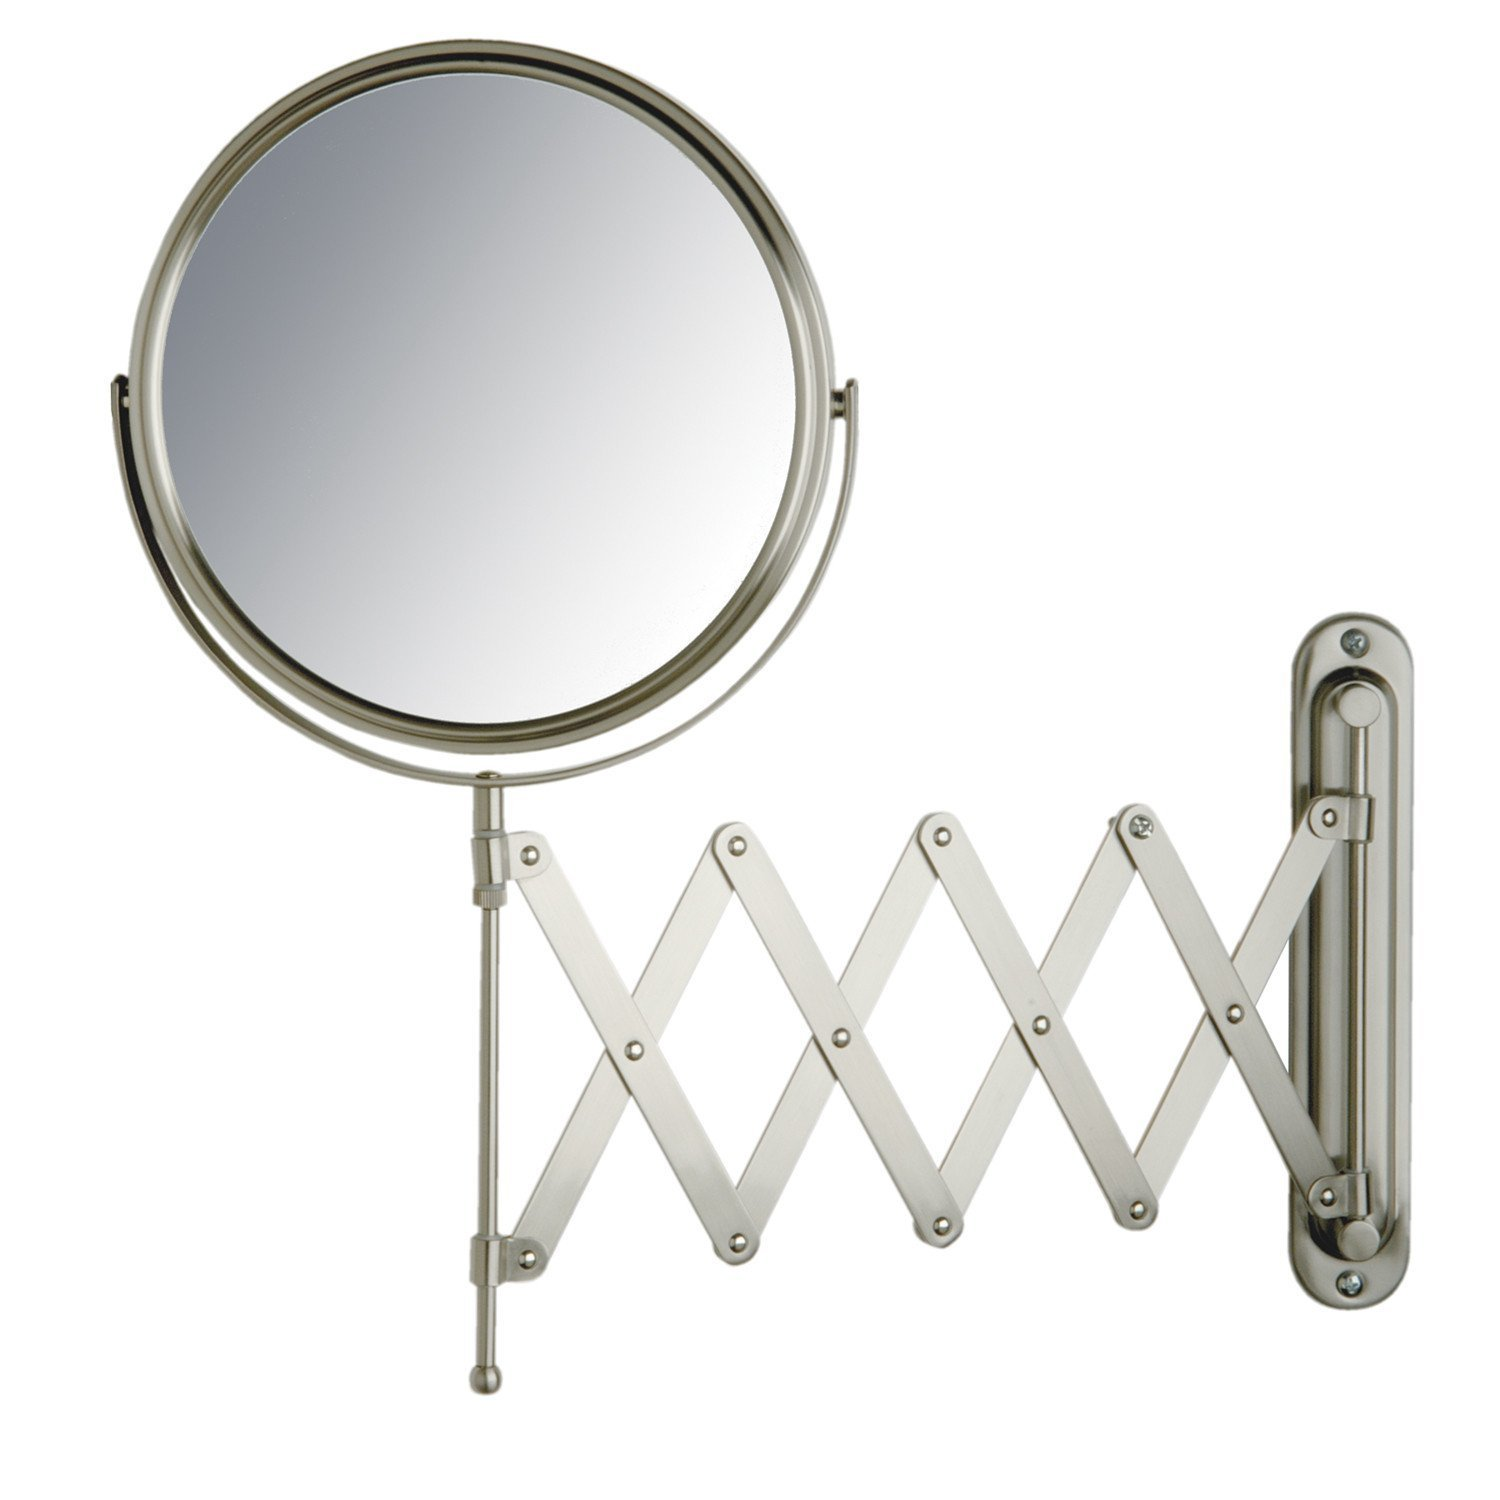 Jerdon JP2027N 8-Inch Wall Mount Makeup Mirror with 7x Magnification, Nickel Finish by Jerdon